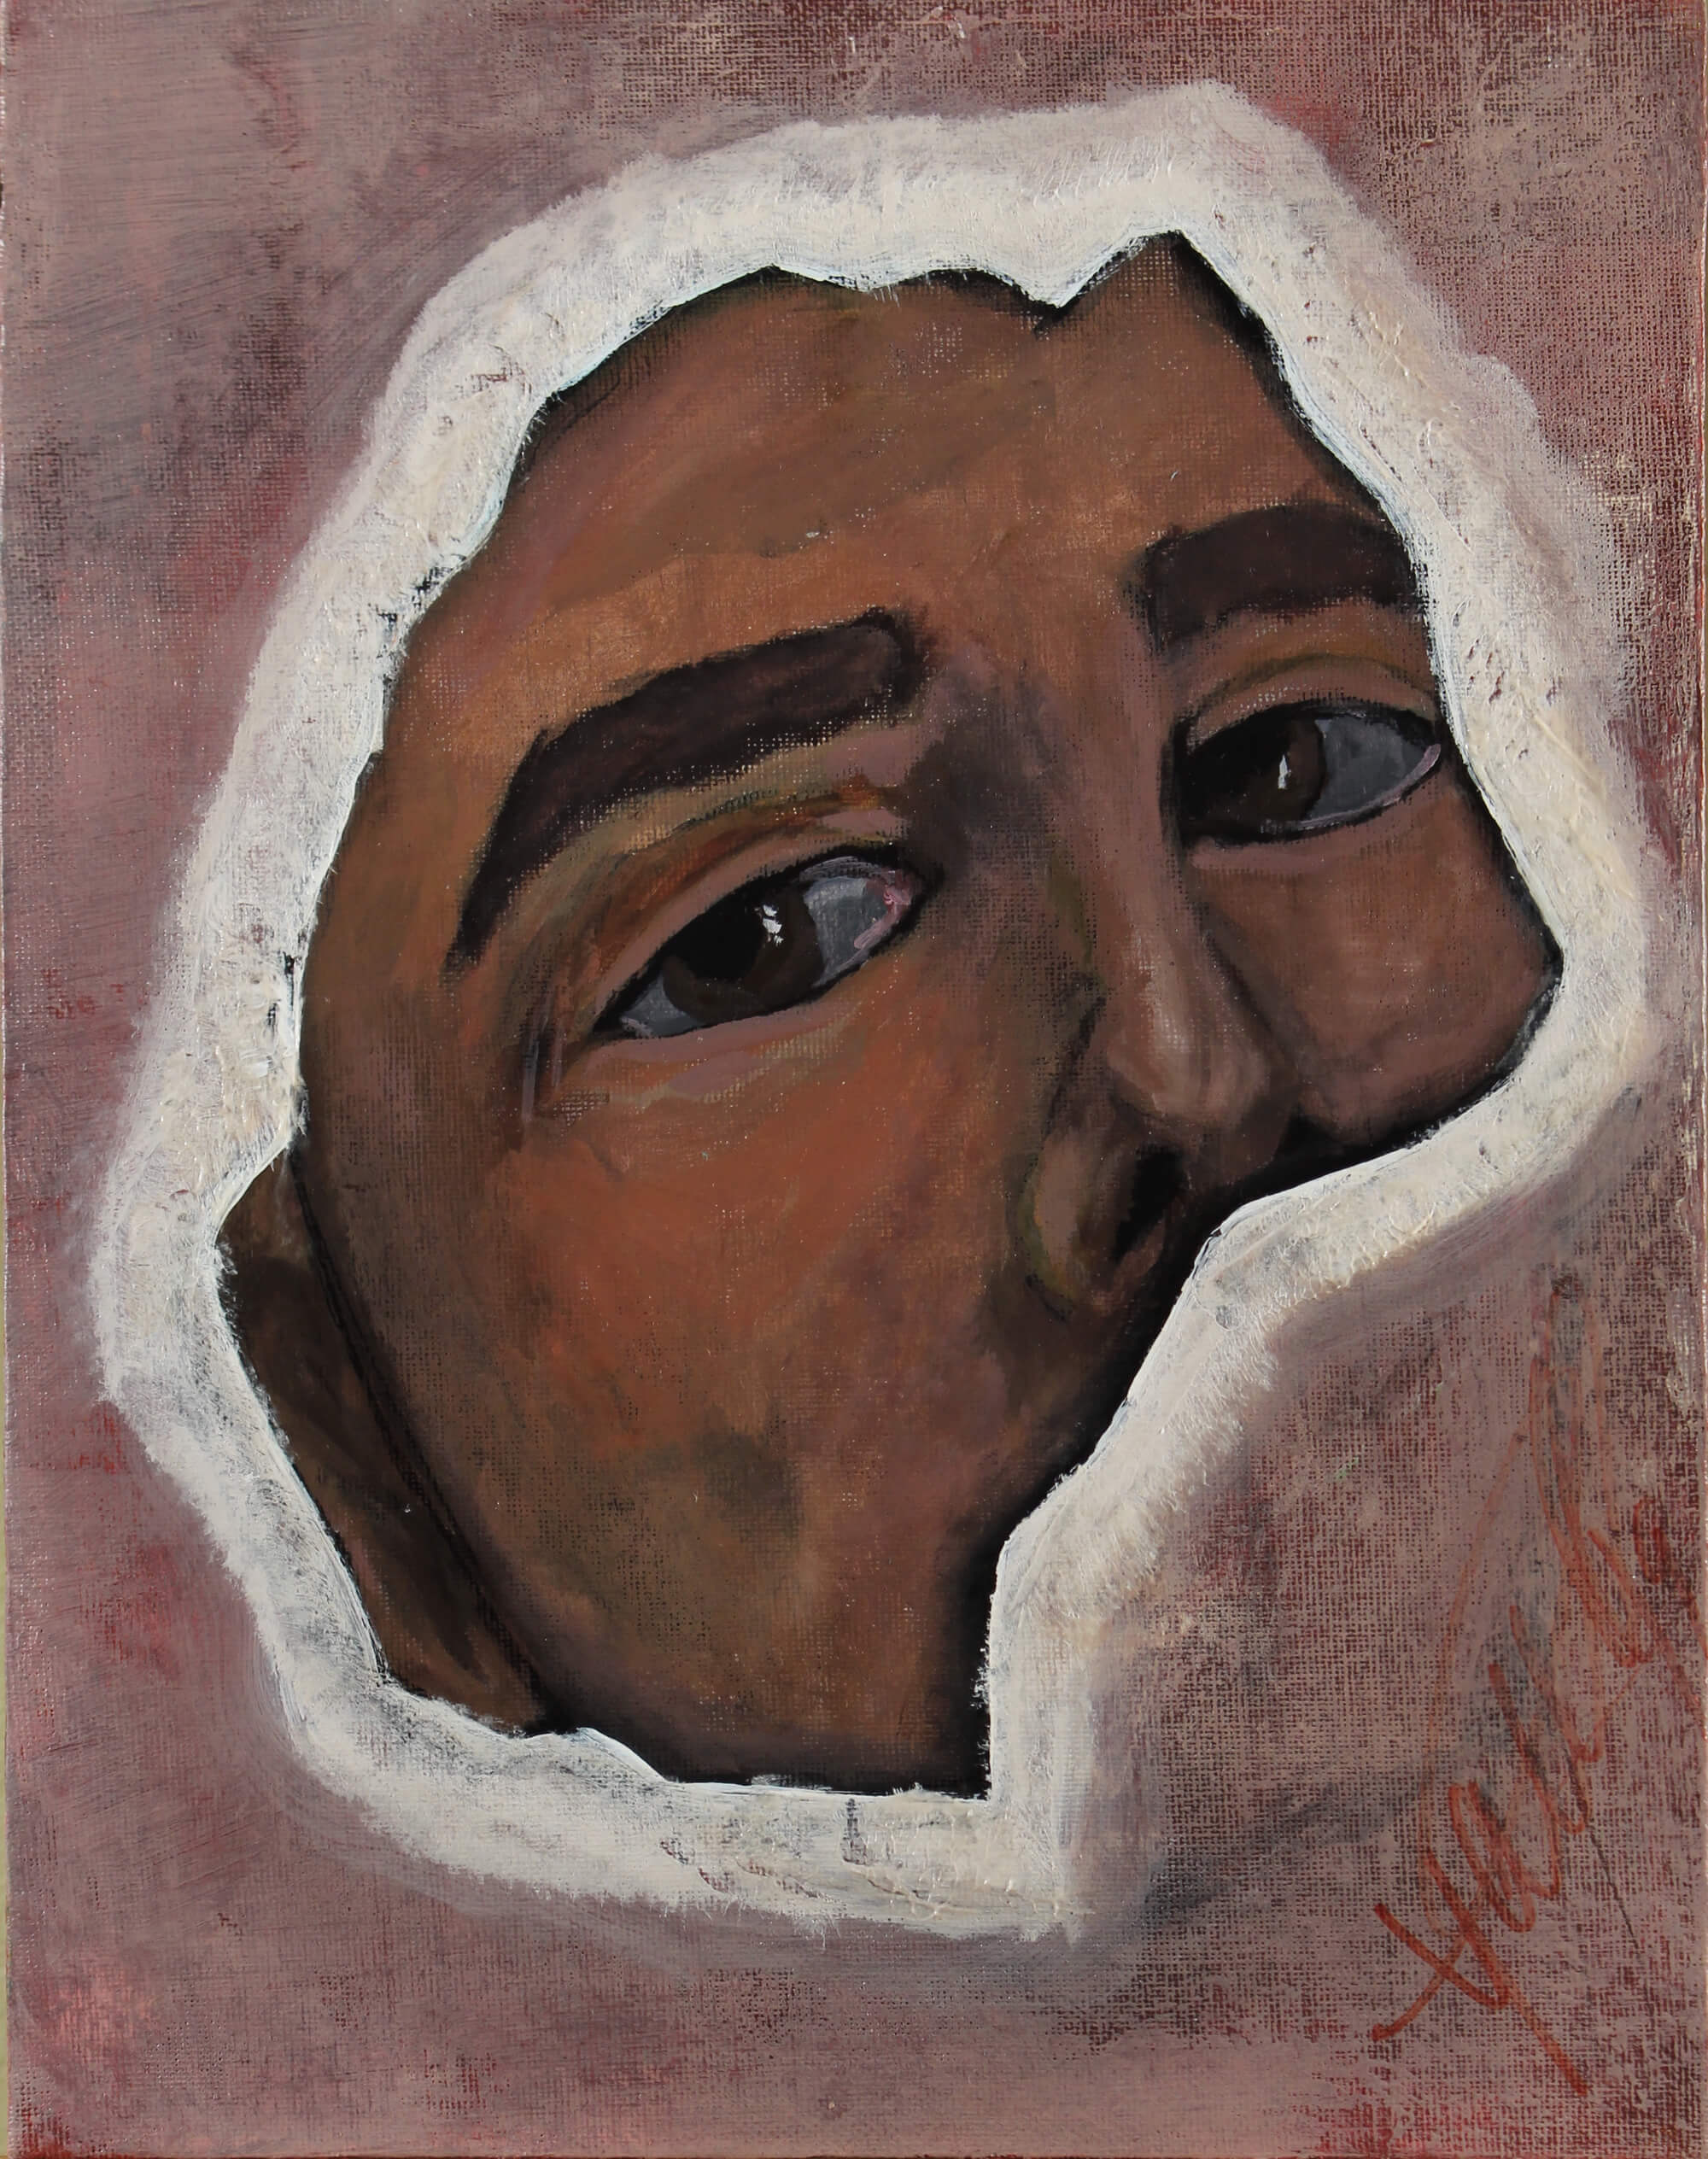 Acrylic painting of a man's face seen through an enclosure that hides his mouth as a symbol of a muted person by Kyhan Yael